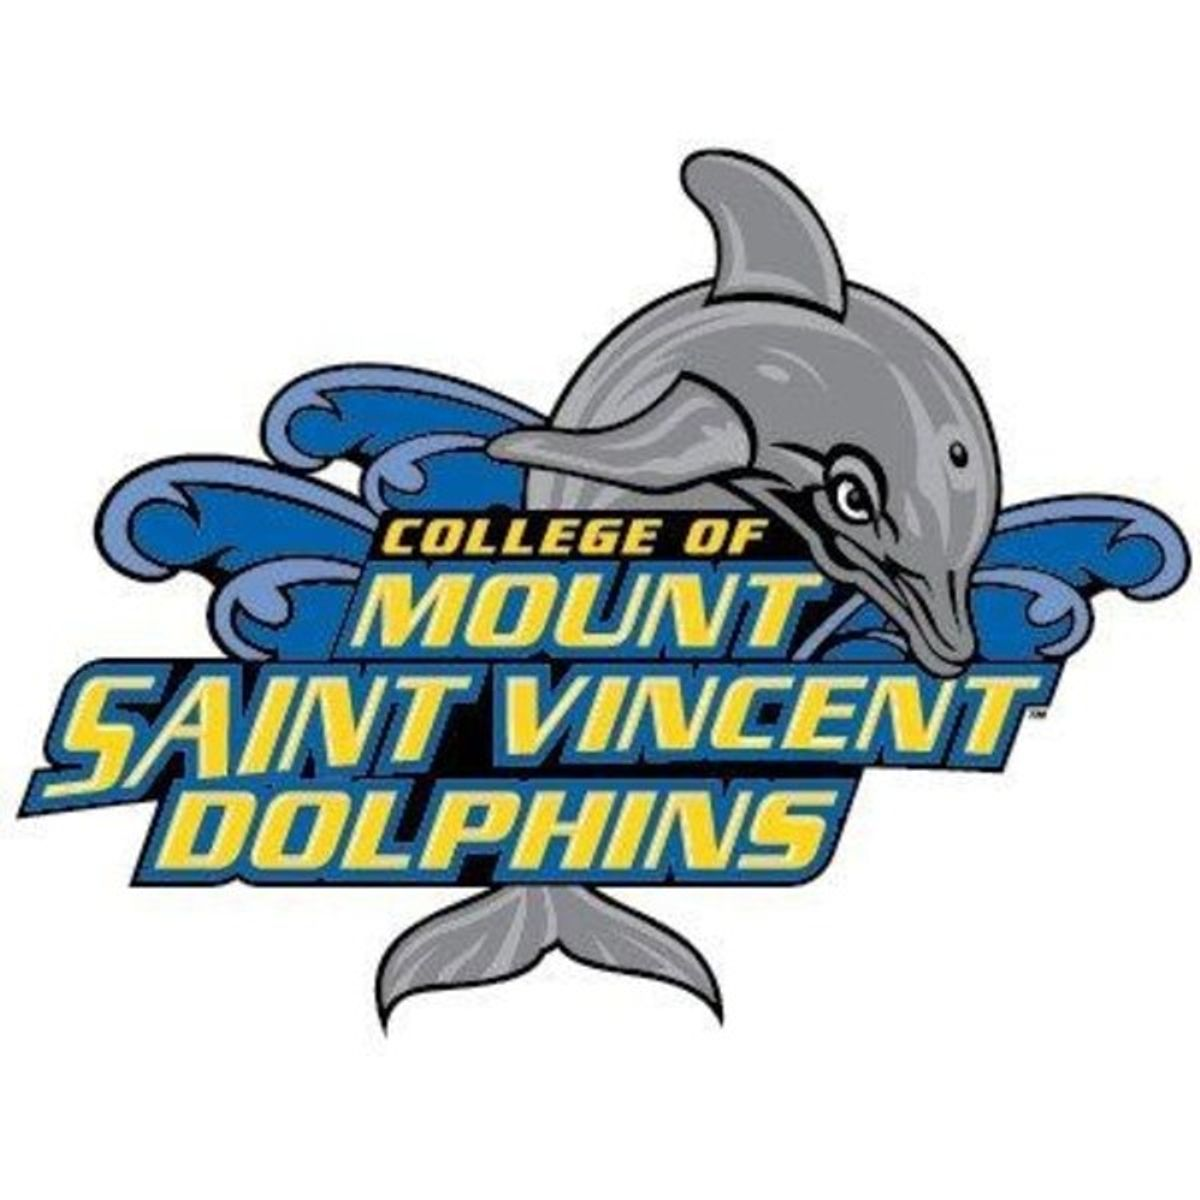 32 Questions I Have For The College Of Mount Saint Vincent